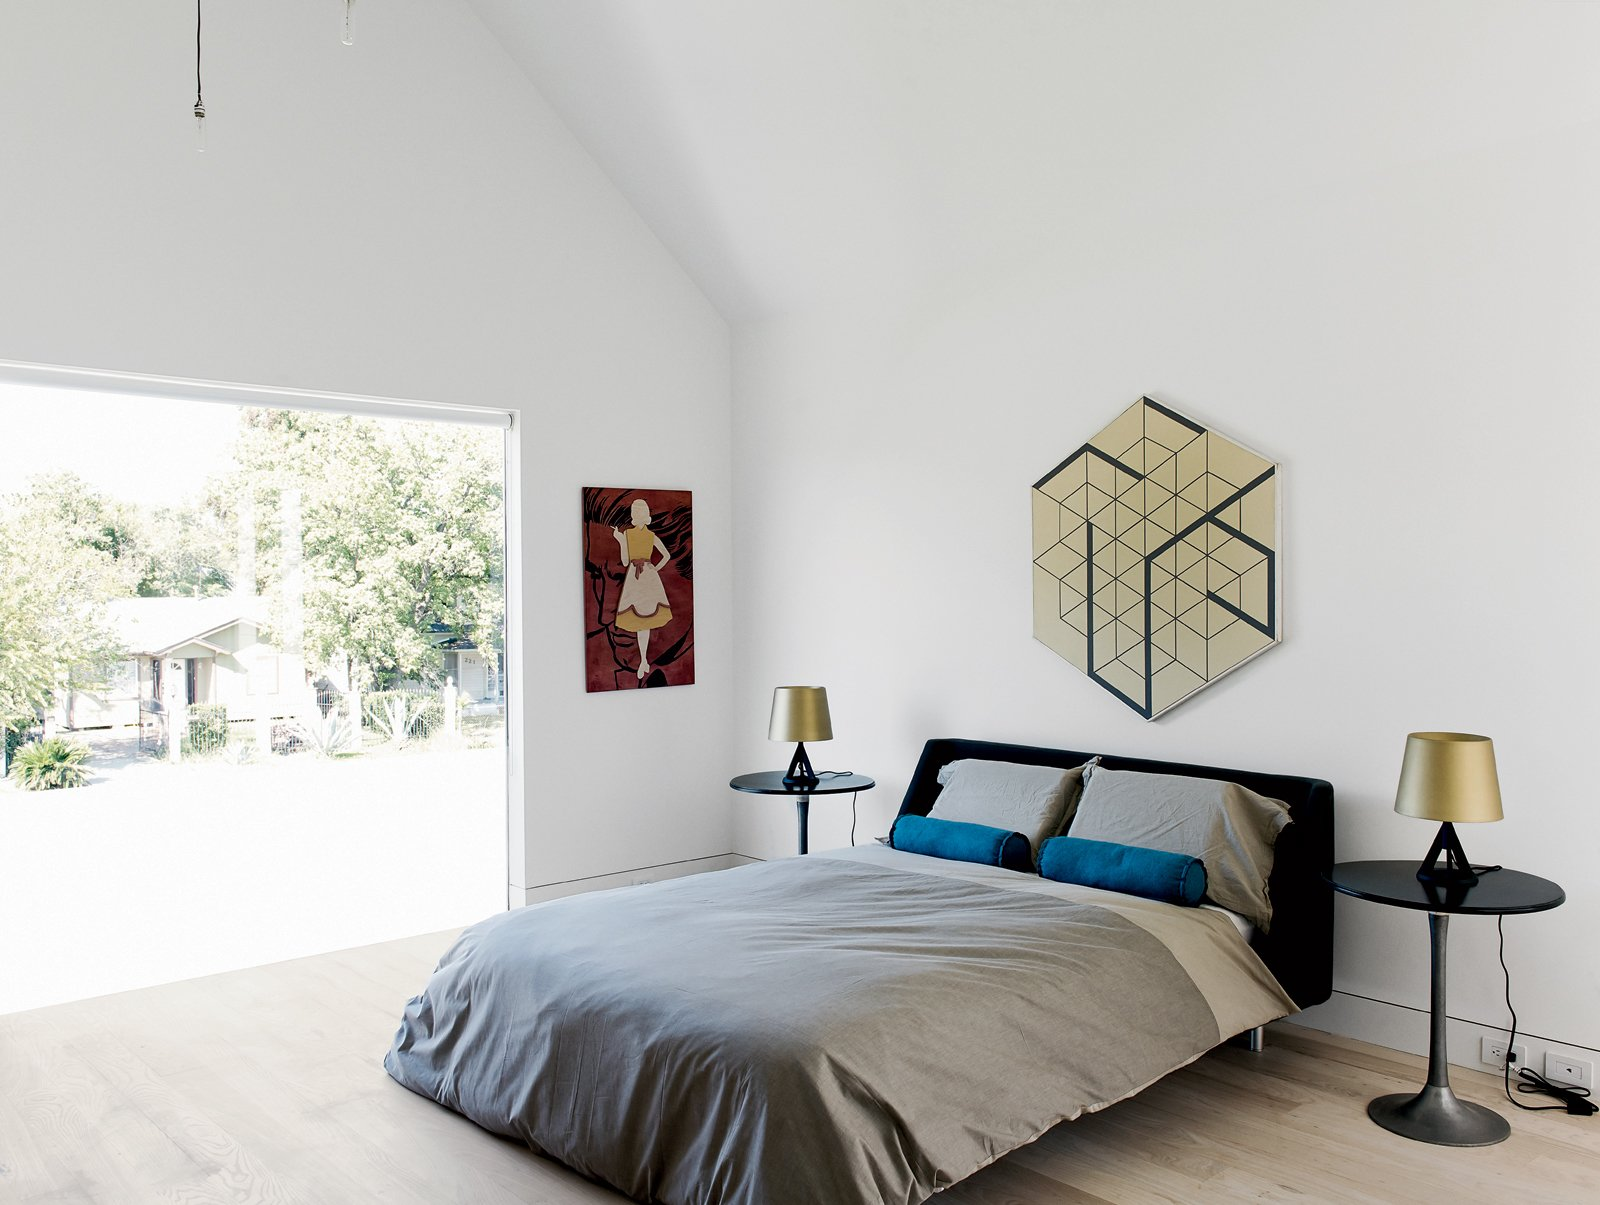 Bedroom, Bed, and Light Hardwood Floor The master bedroom in Holden Shannon's unit in Houston's Row on 25th development features a Nook bed from Blu Dot, a pair of Base table lights by Tom Dixon, and a painting by artist Elva Stewart.  Photo 6 of 15 in Row on 25th: Affordable Housing Development in Houston